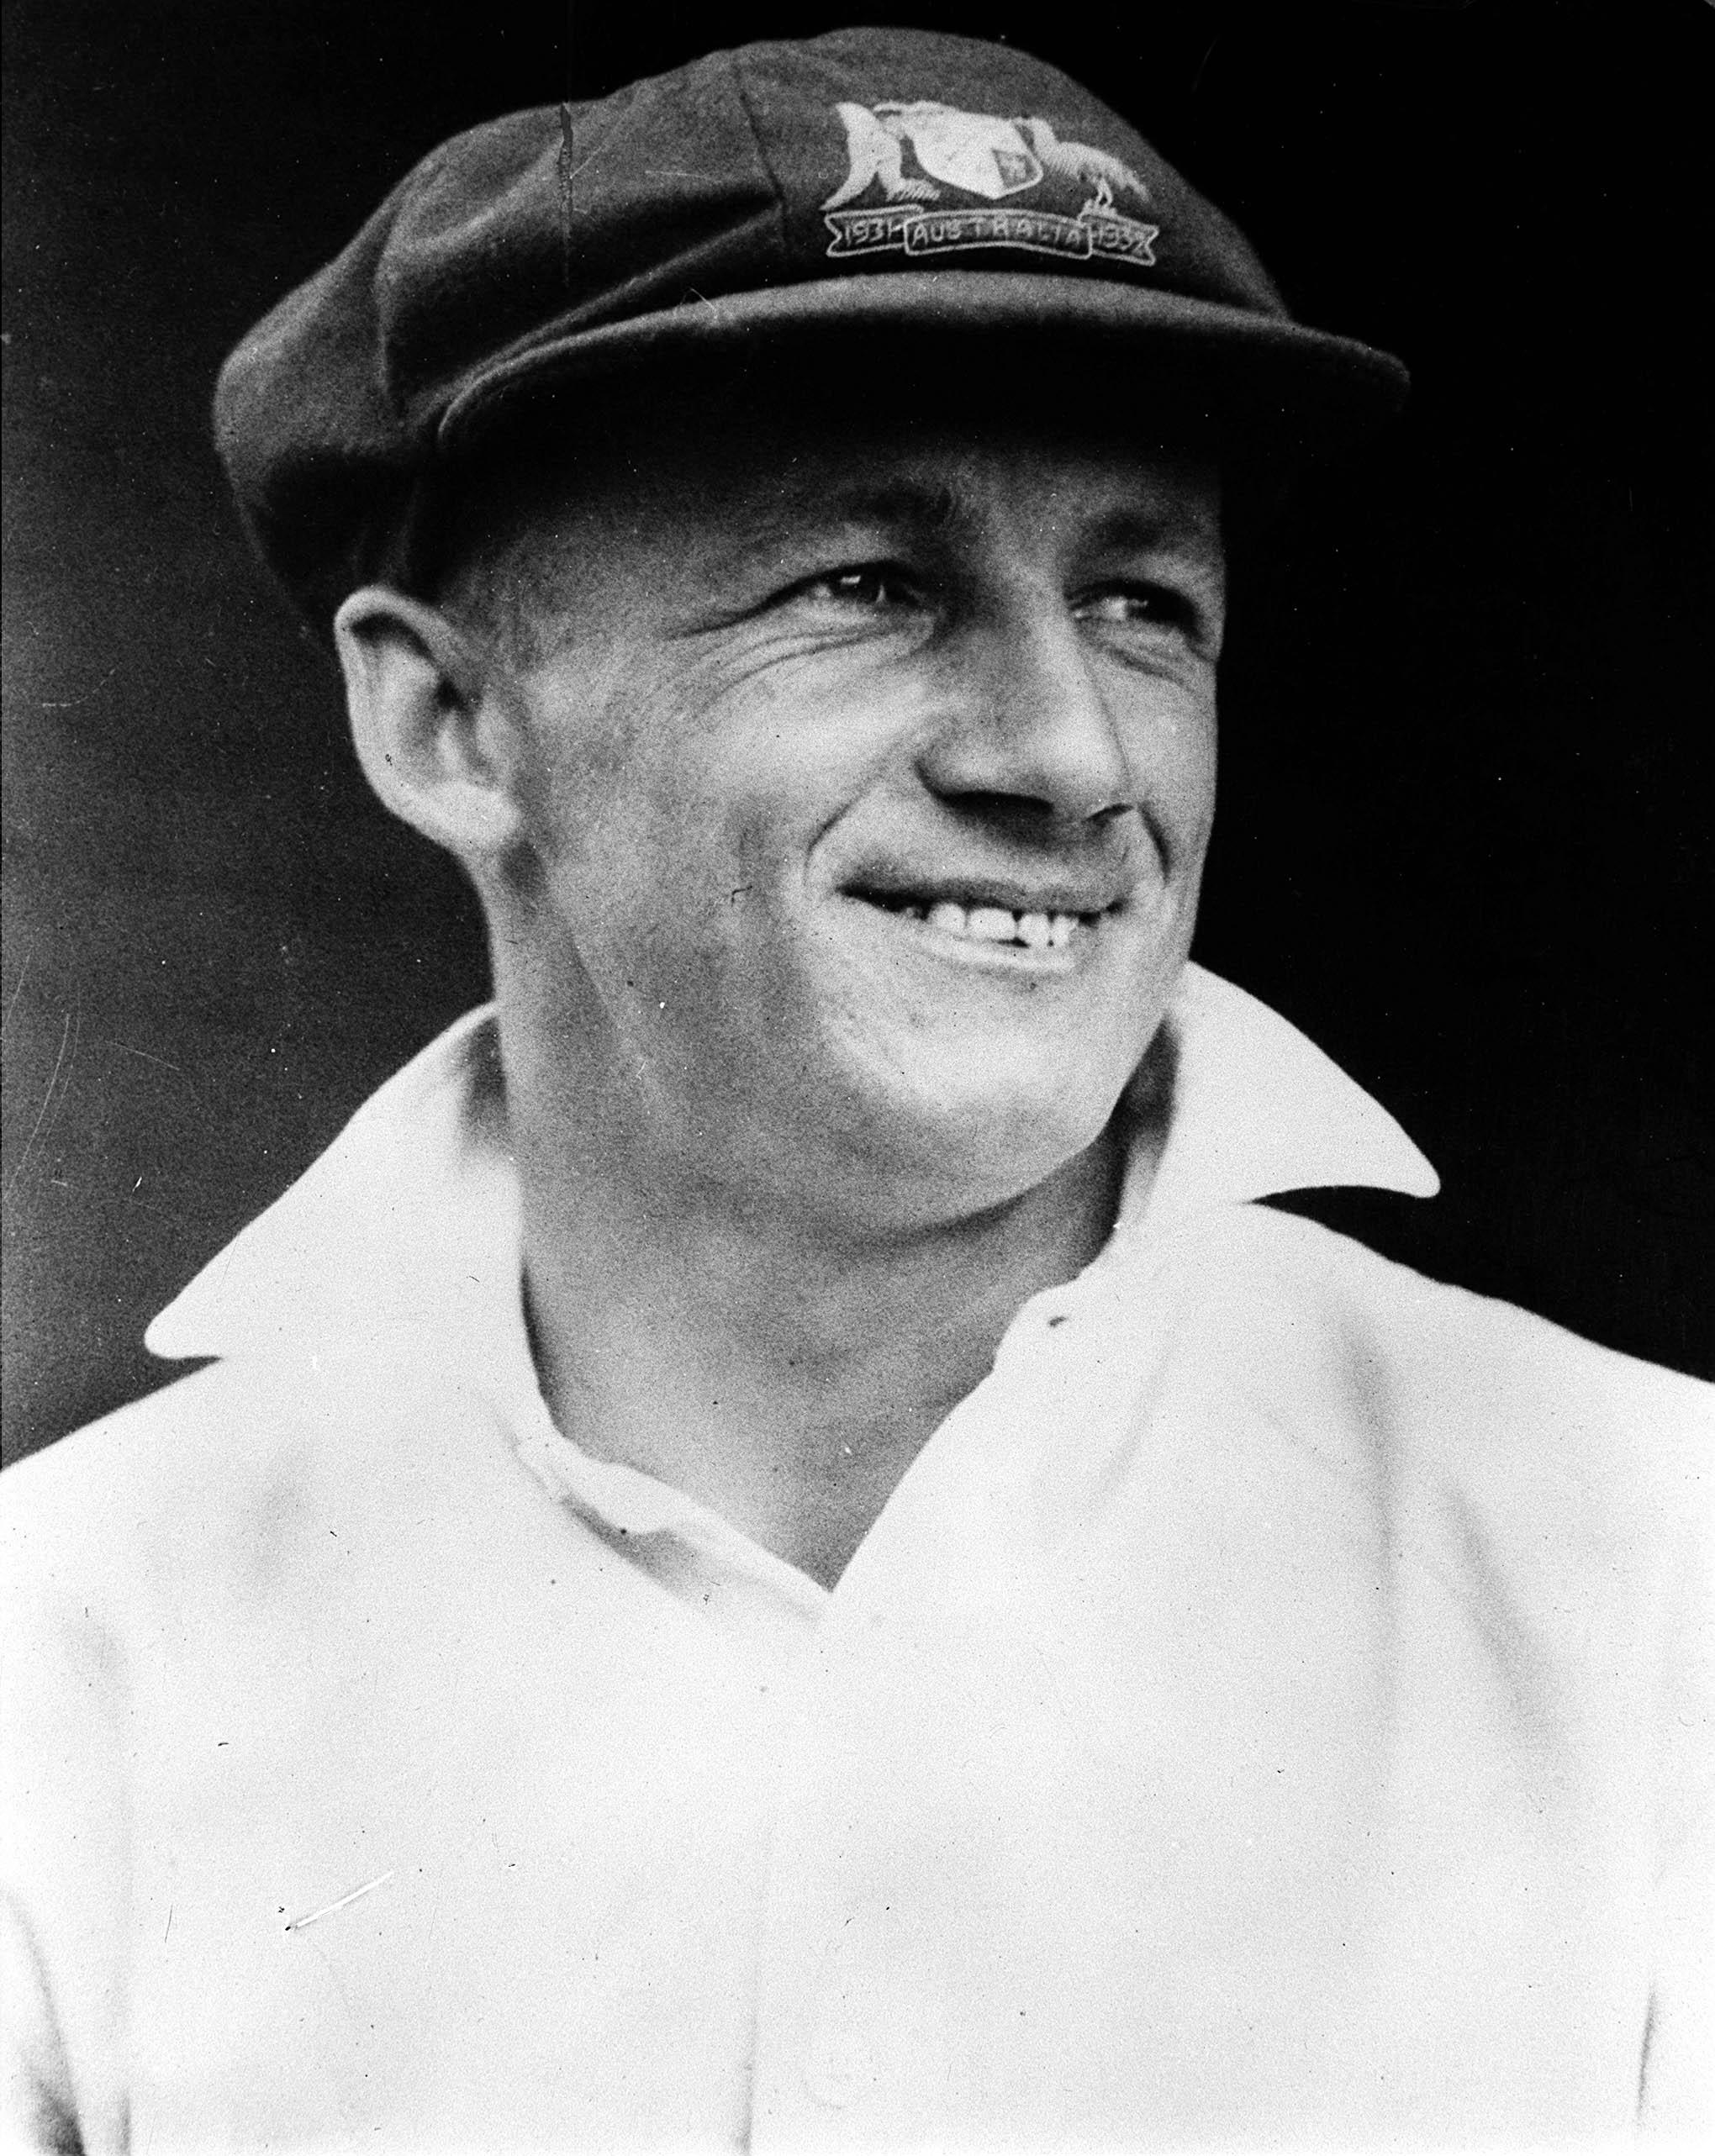 The Don held the world record at one time for the highest Test score